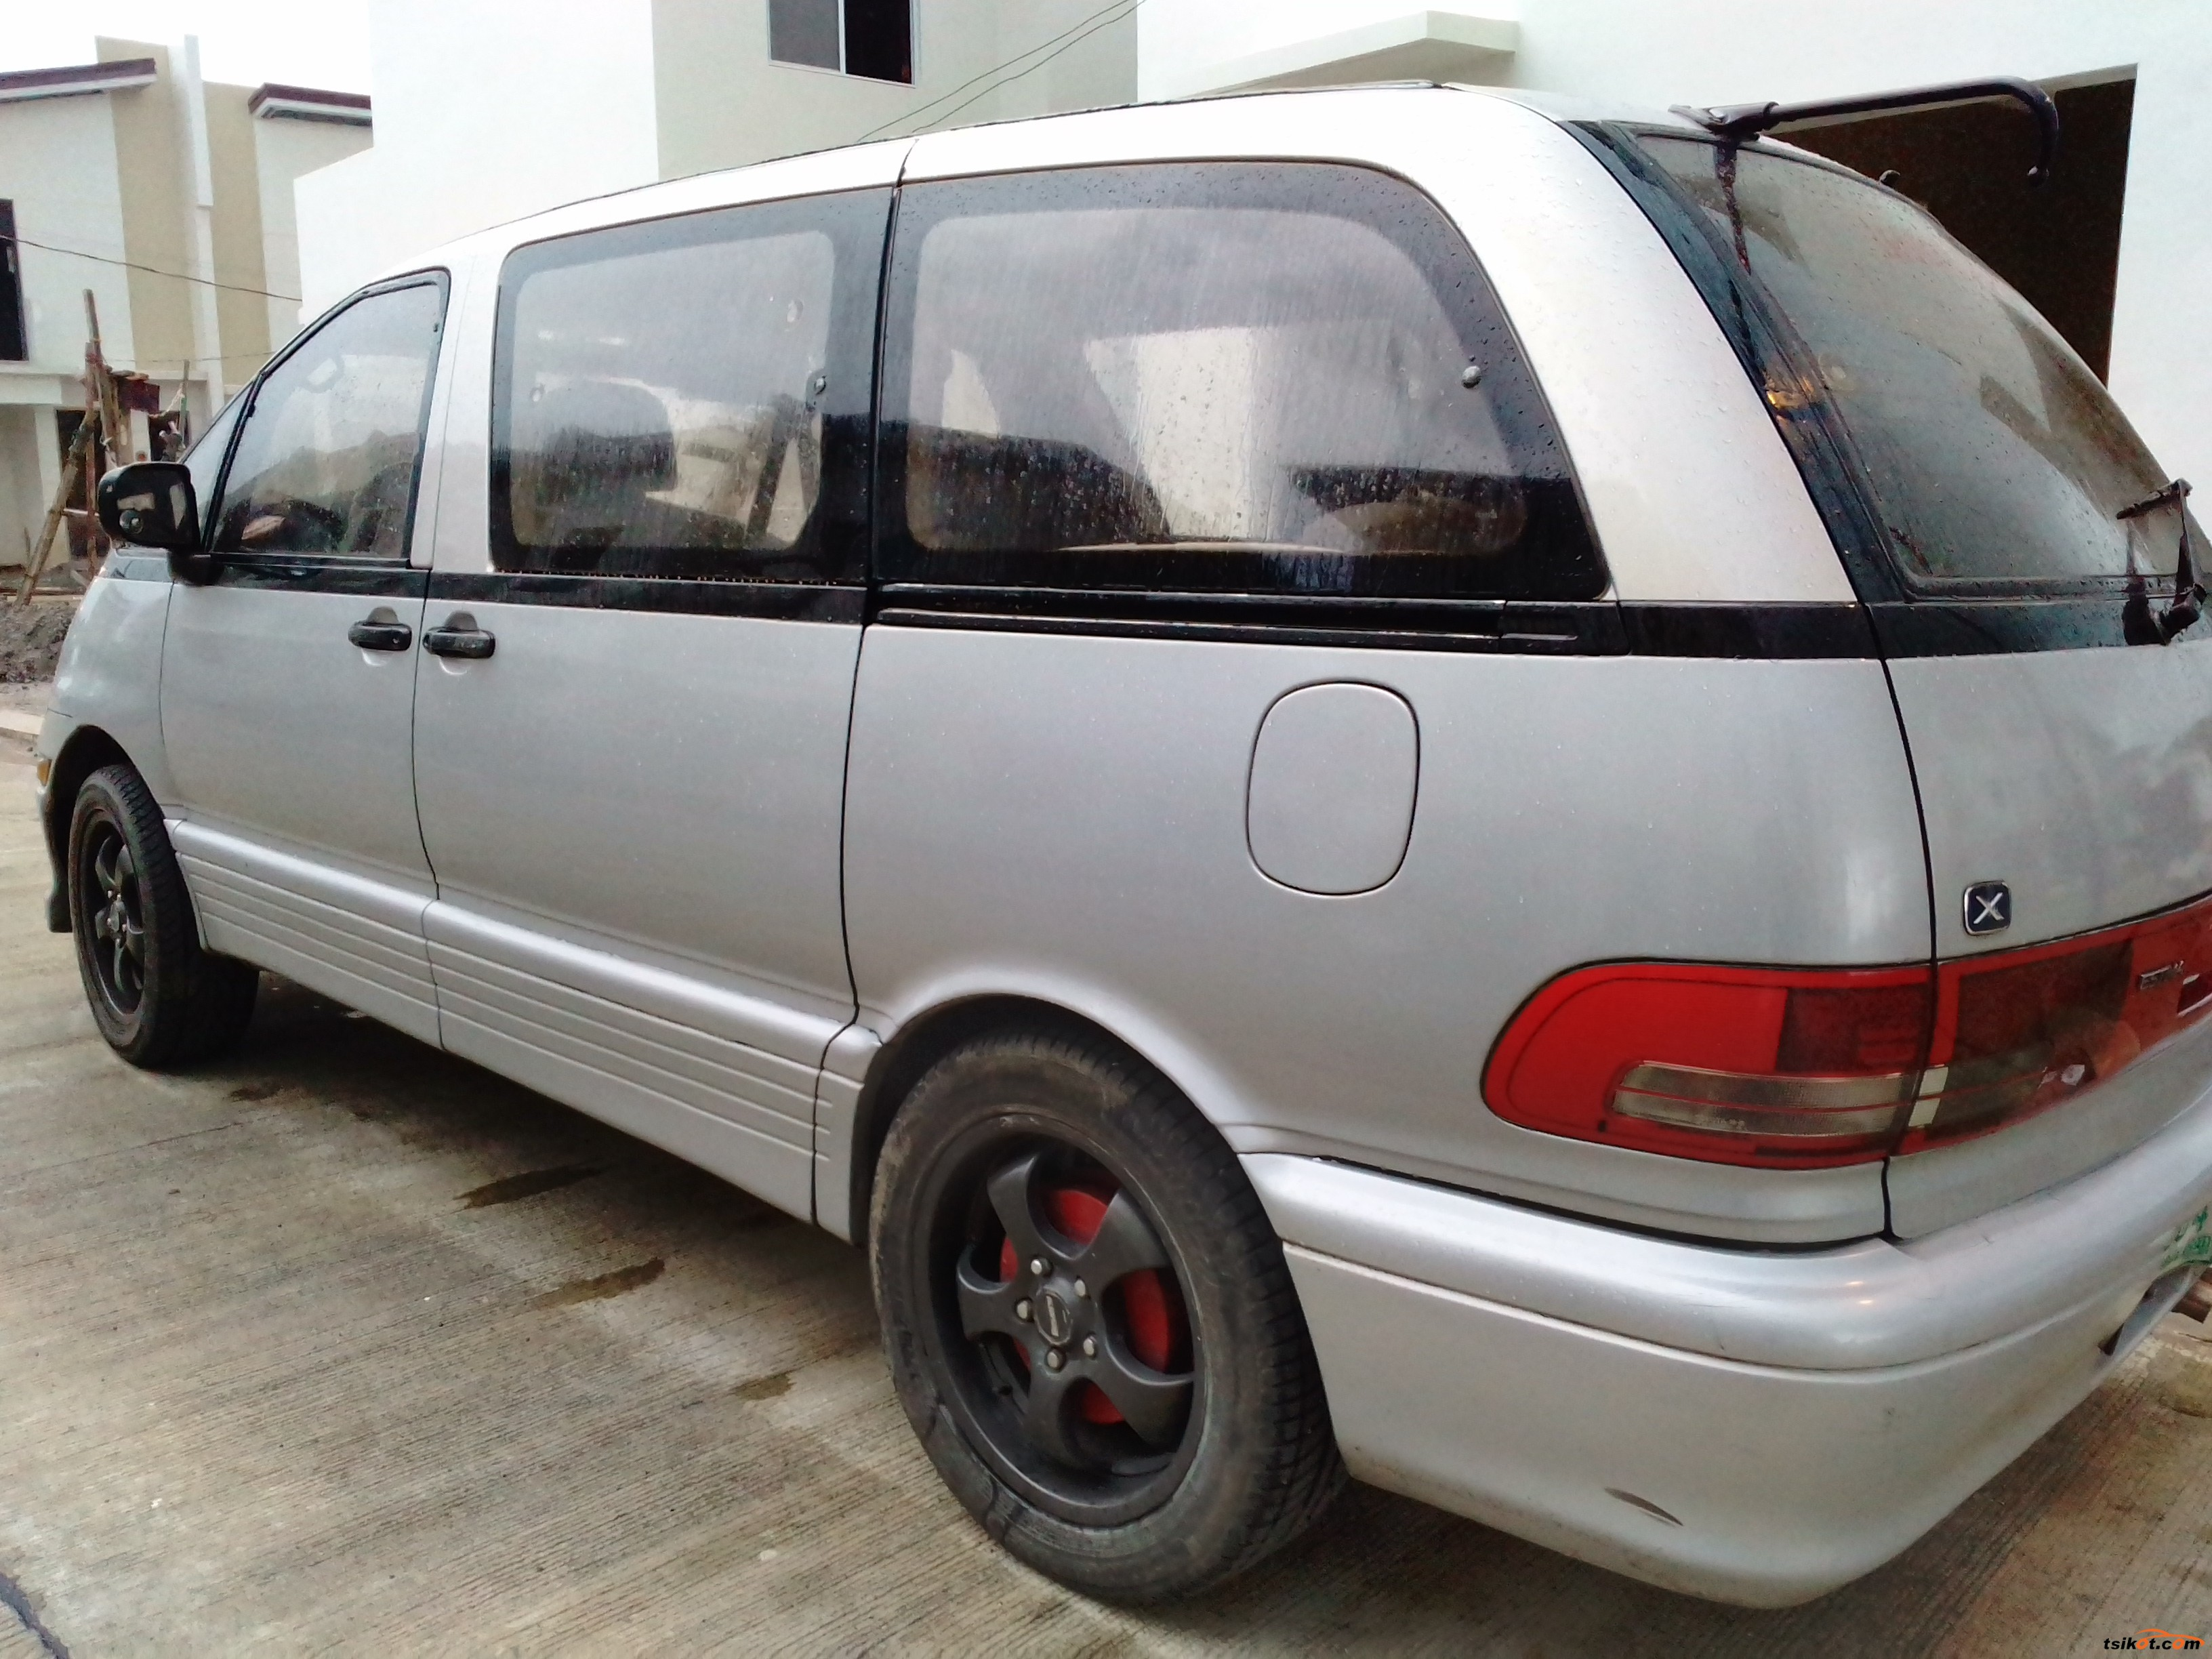 toyota previa 1992 car for sale metro manila philippines. Black Bedroom Furniture Sets. Home Design Ideas